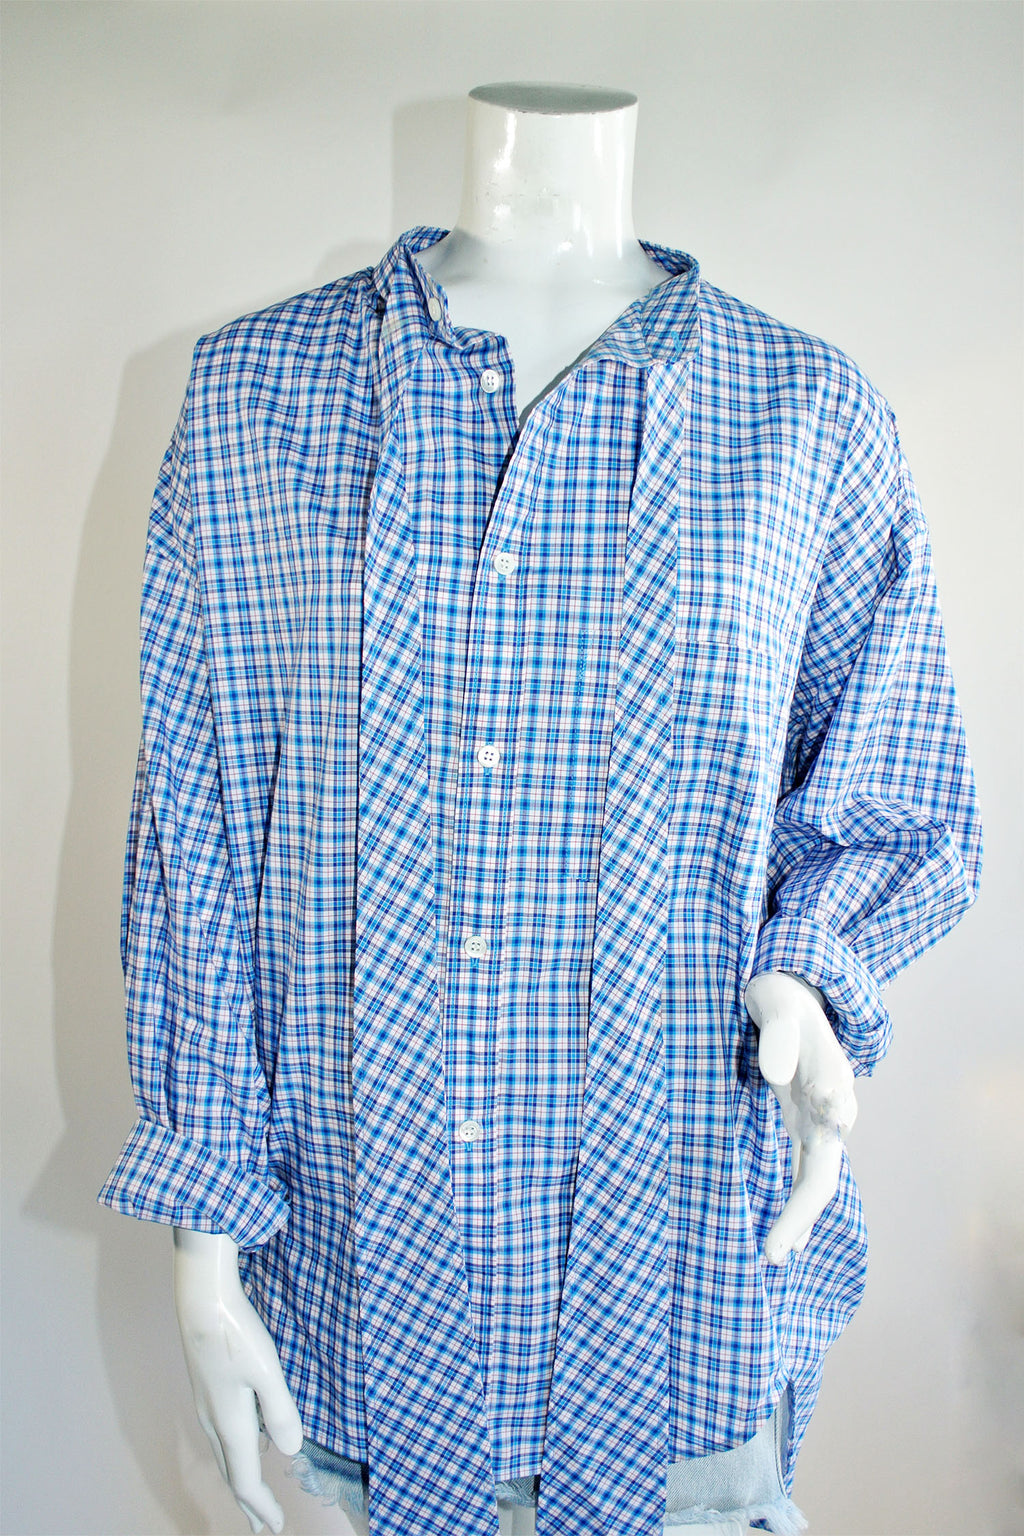 Balenciaga 2018 Plaid Top w Logo Print at Back Sz 38